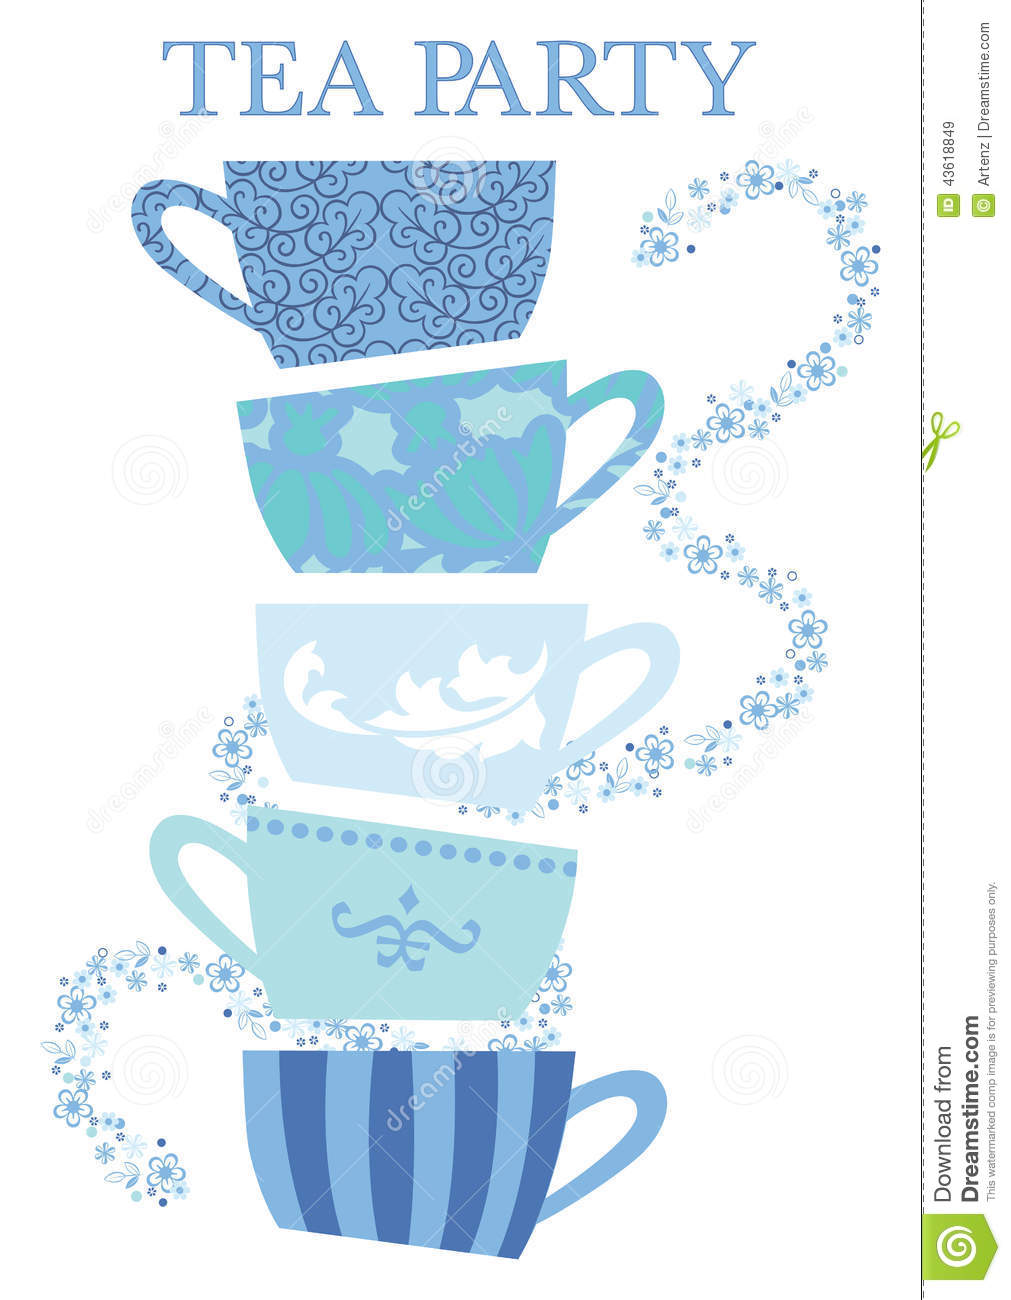 Tea Party Cups Stock Vector - Image: 43618849